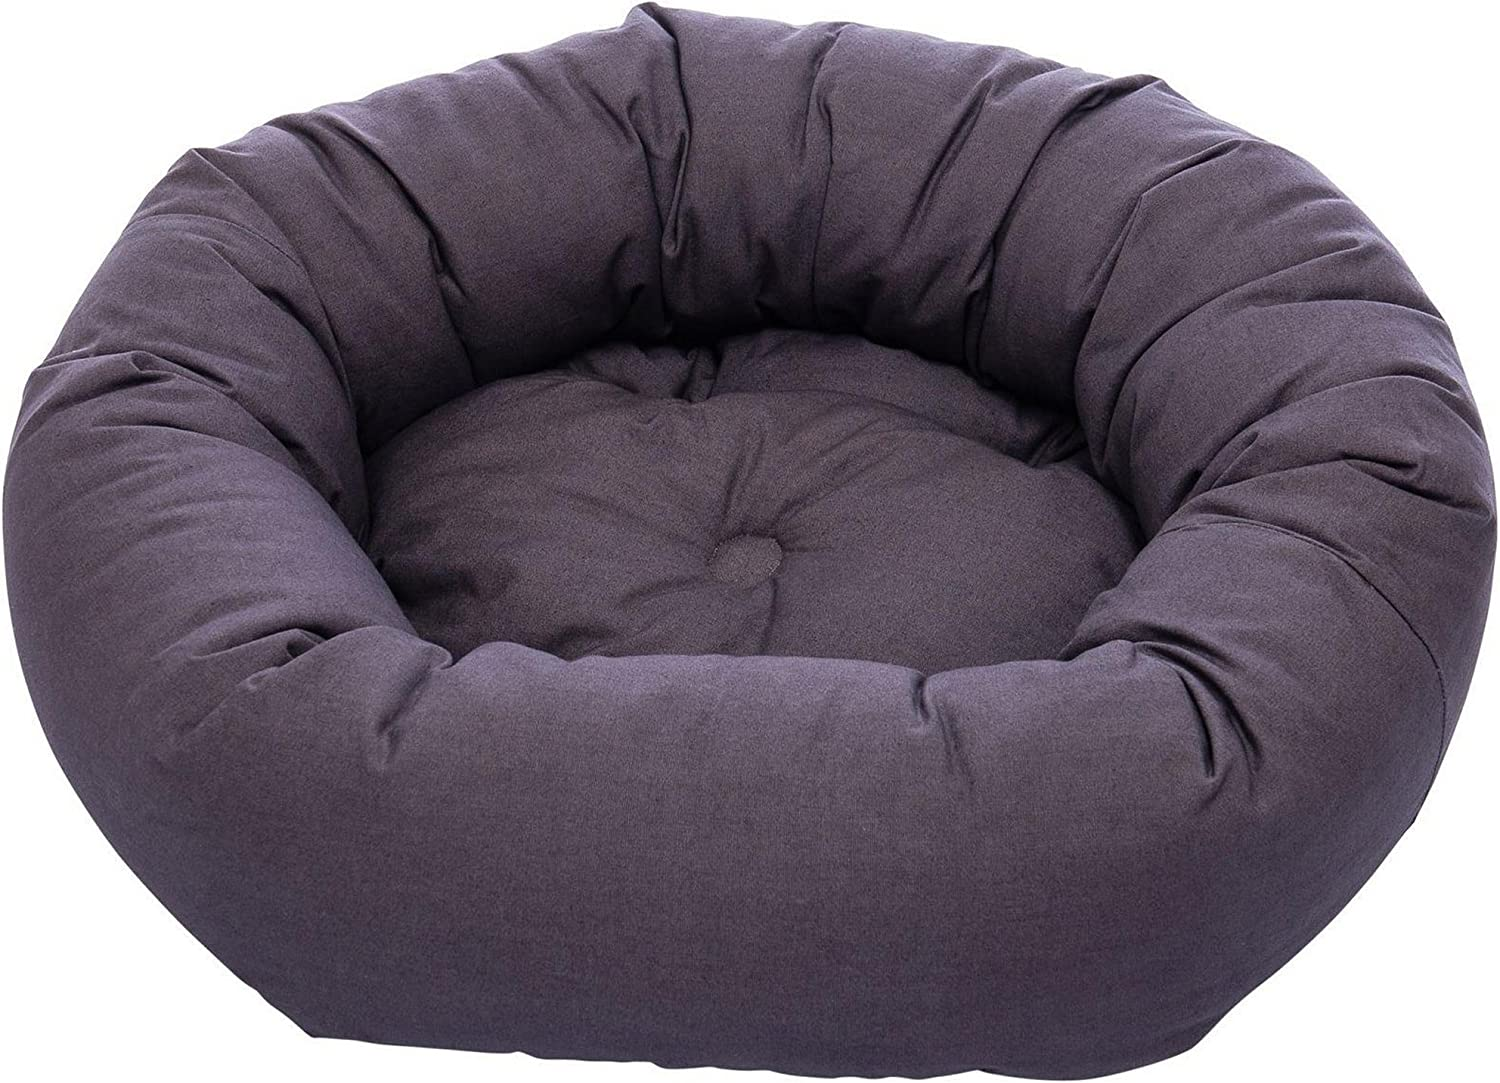 Dog Gone Smart Donut Pet Bed (Small) (Pebble Grey)